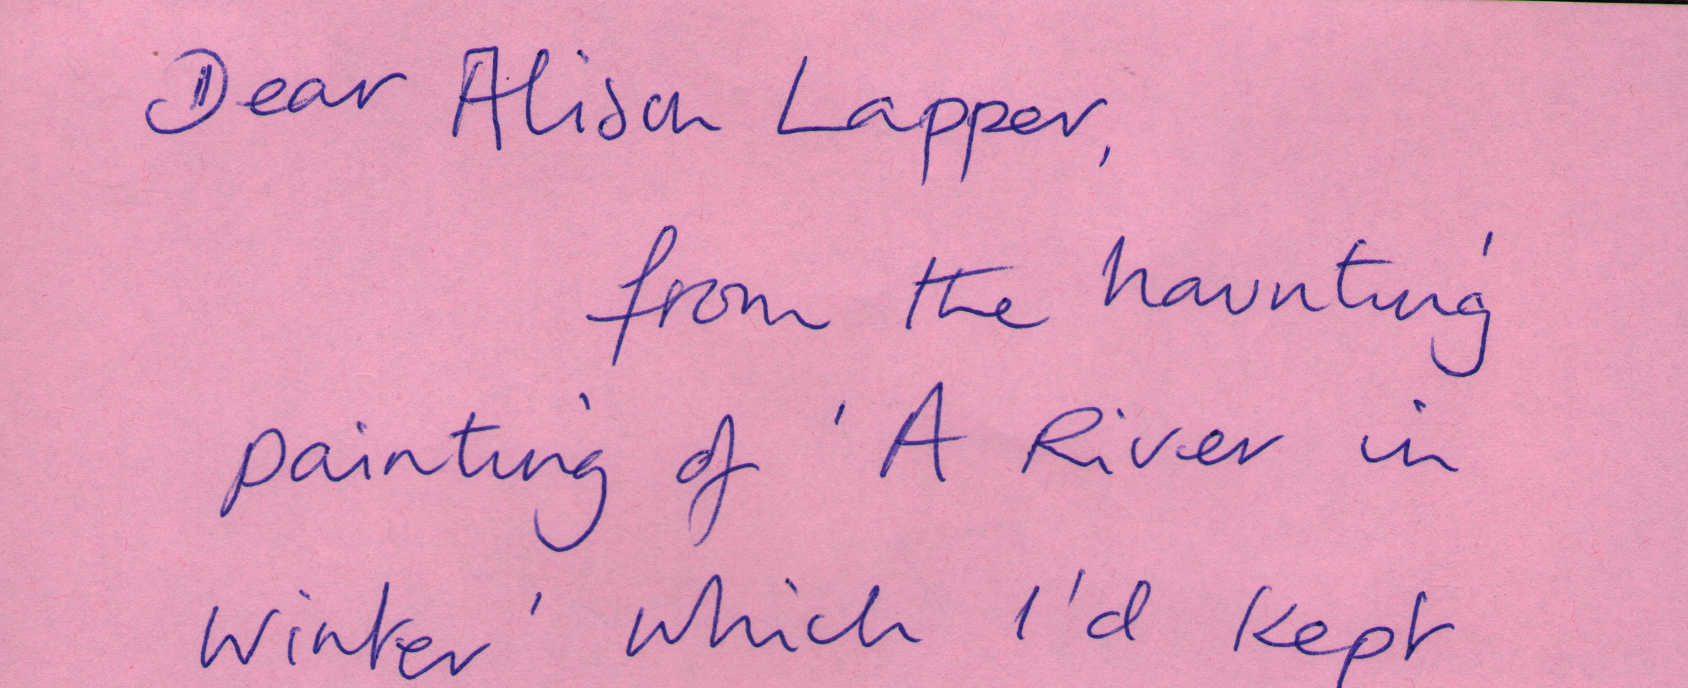 Letter to Alison Lapper from Jane McIver